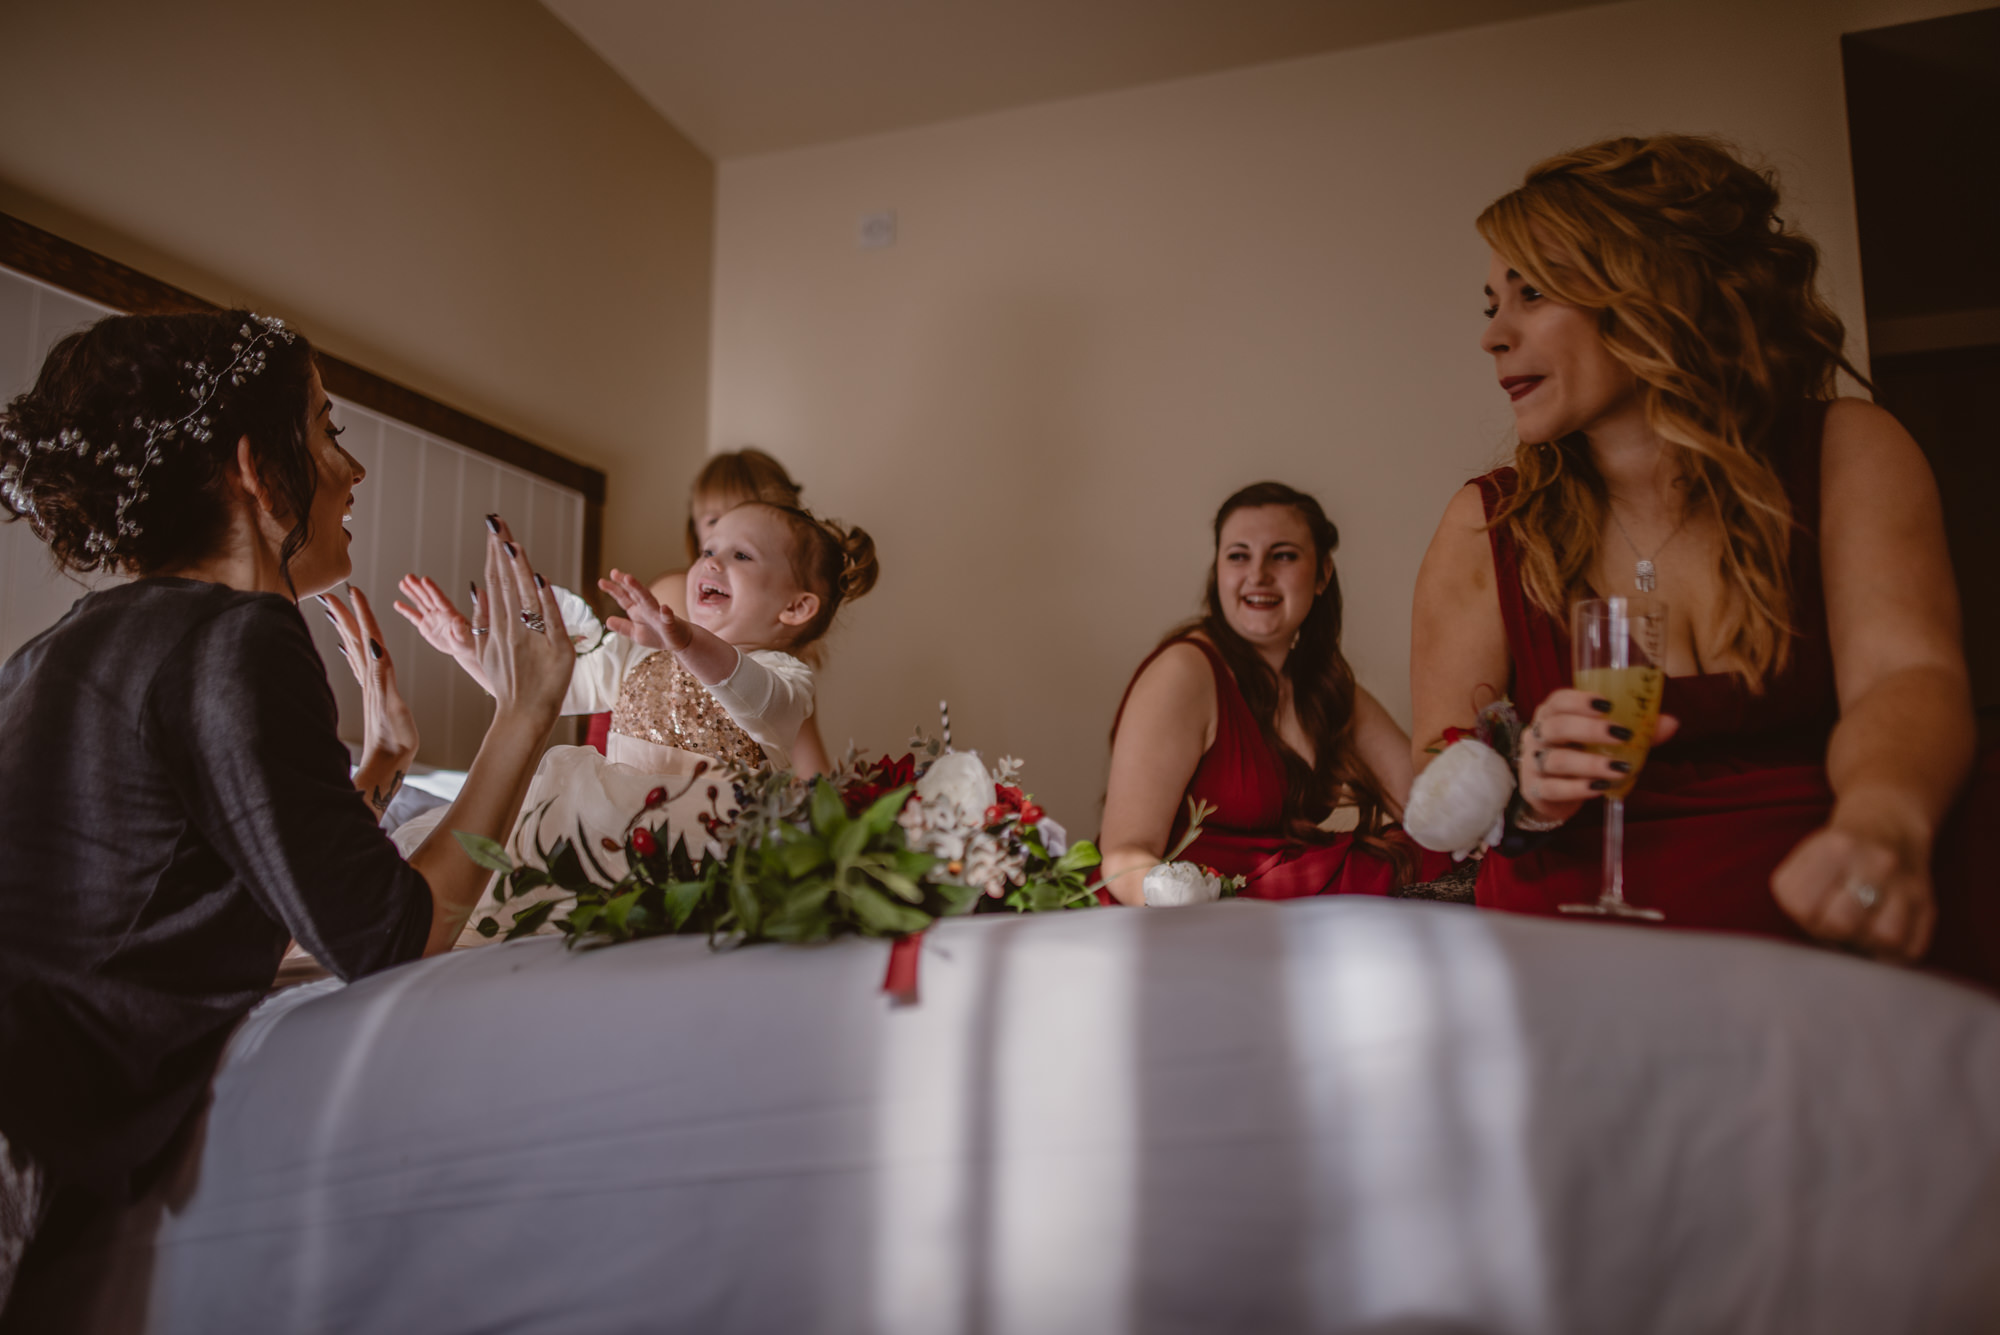 Marissa-and-Ash-Wedding-at-Winchester-Guildhall-and-The-Meade-Hall-Hampshire-Manu-Mendoza-Wedding-Photography-108.jpg